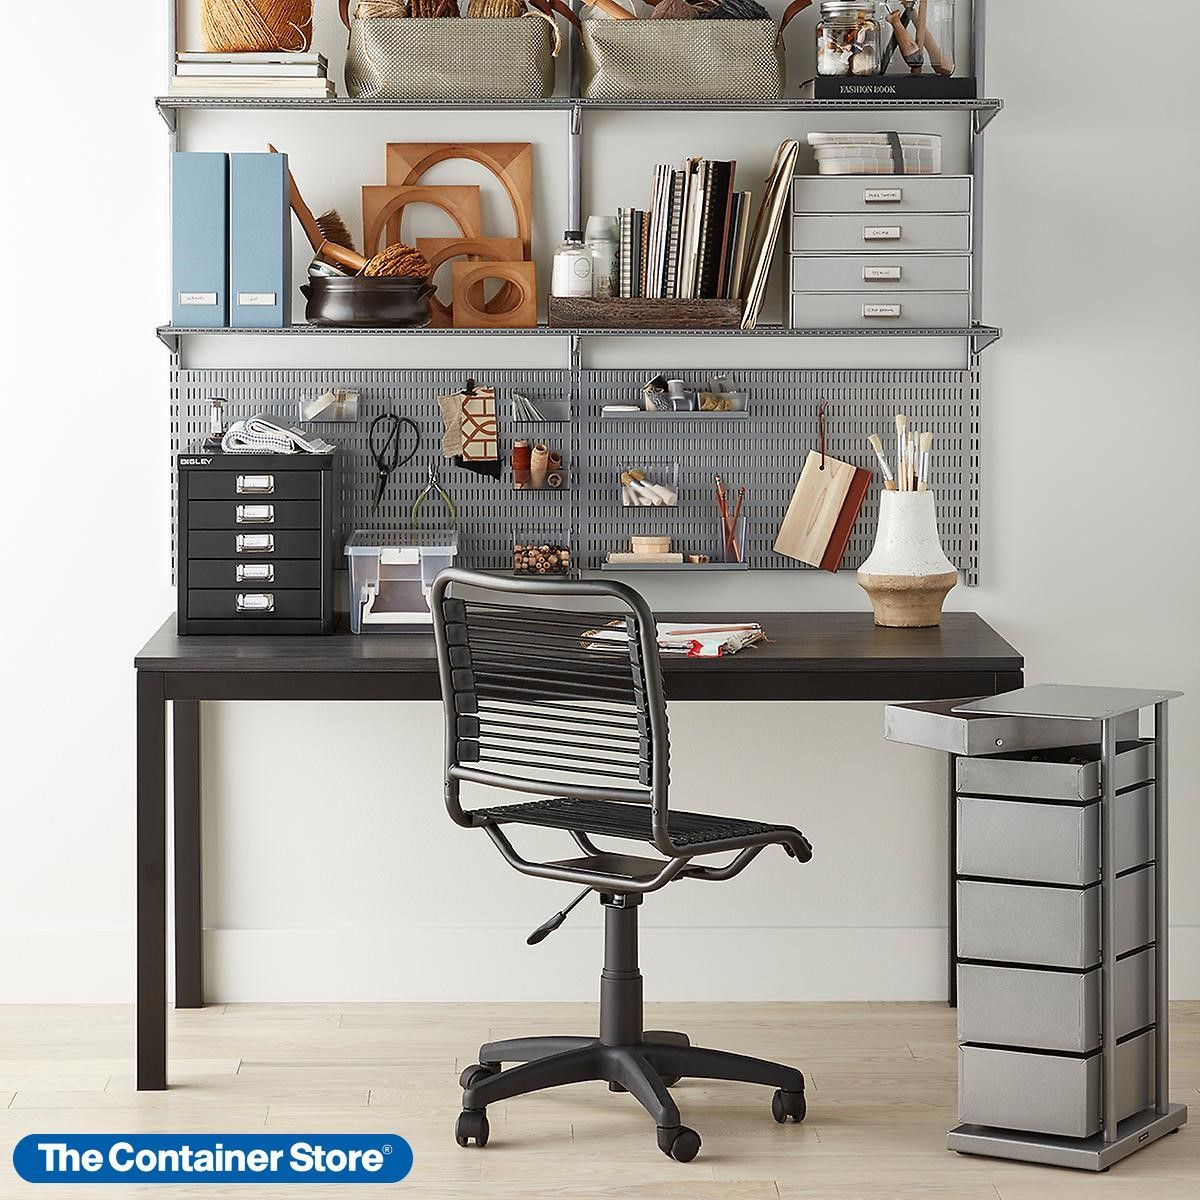 Platinum Elfa Home Office Shelving In 2020 Office Shelving